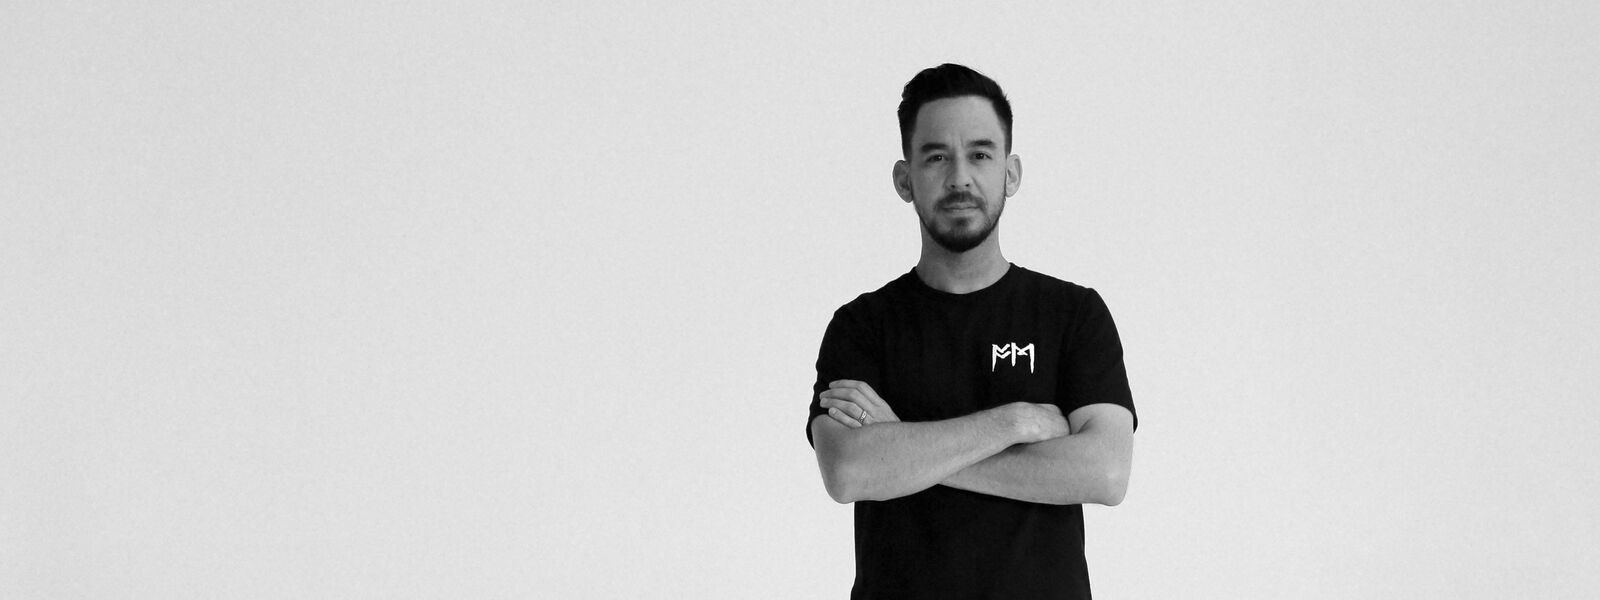 Mike Shinoda - Post Traumatic Album Release Show